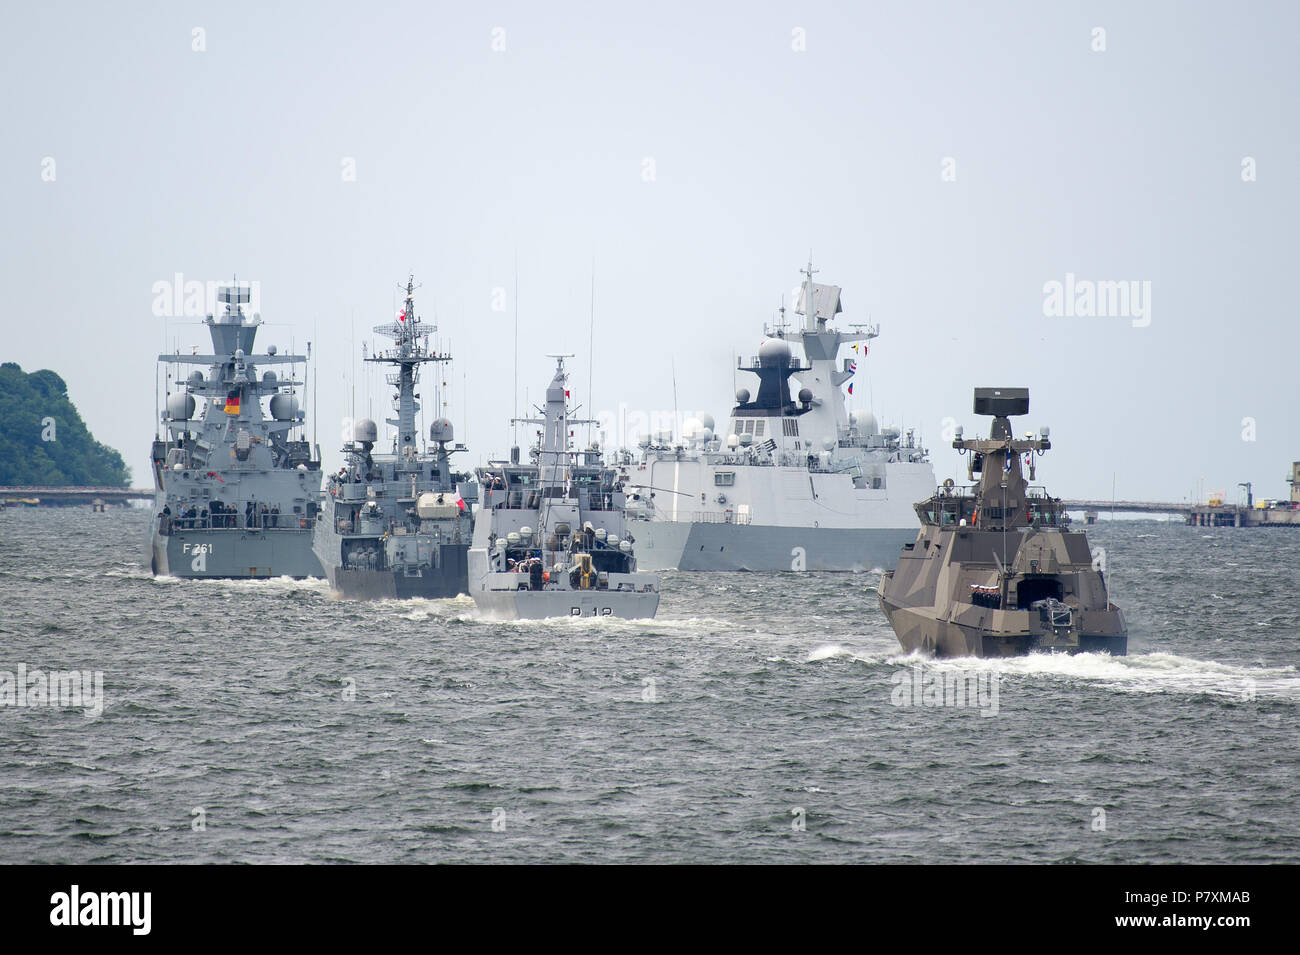 German K130 Braunschweig class corvette F261 Magdeburg during Naval Parade to celebrate 100th annversary of Polish Navy in Gdynia, Poland. June 24th 2 - Stock Image